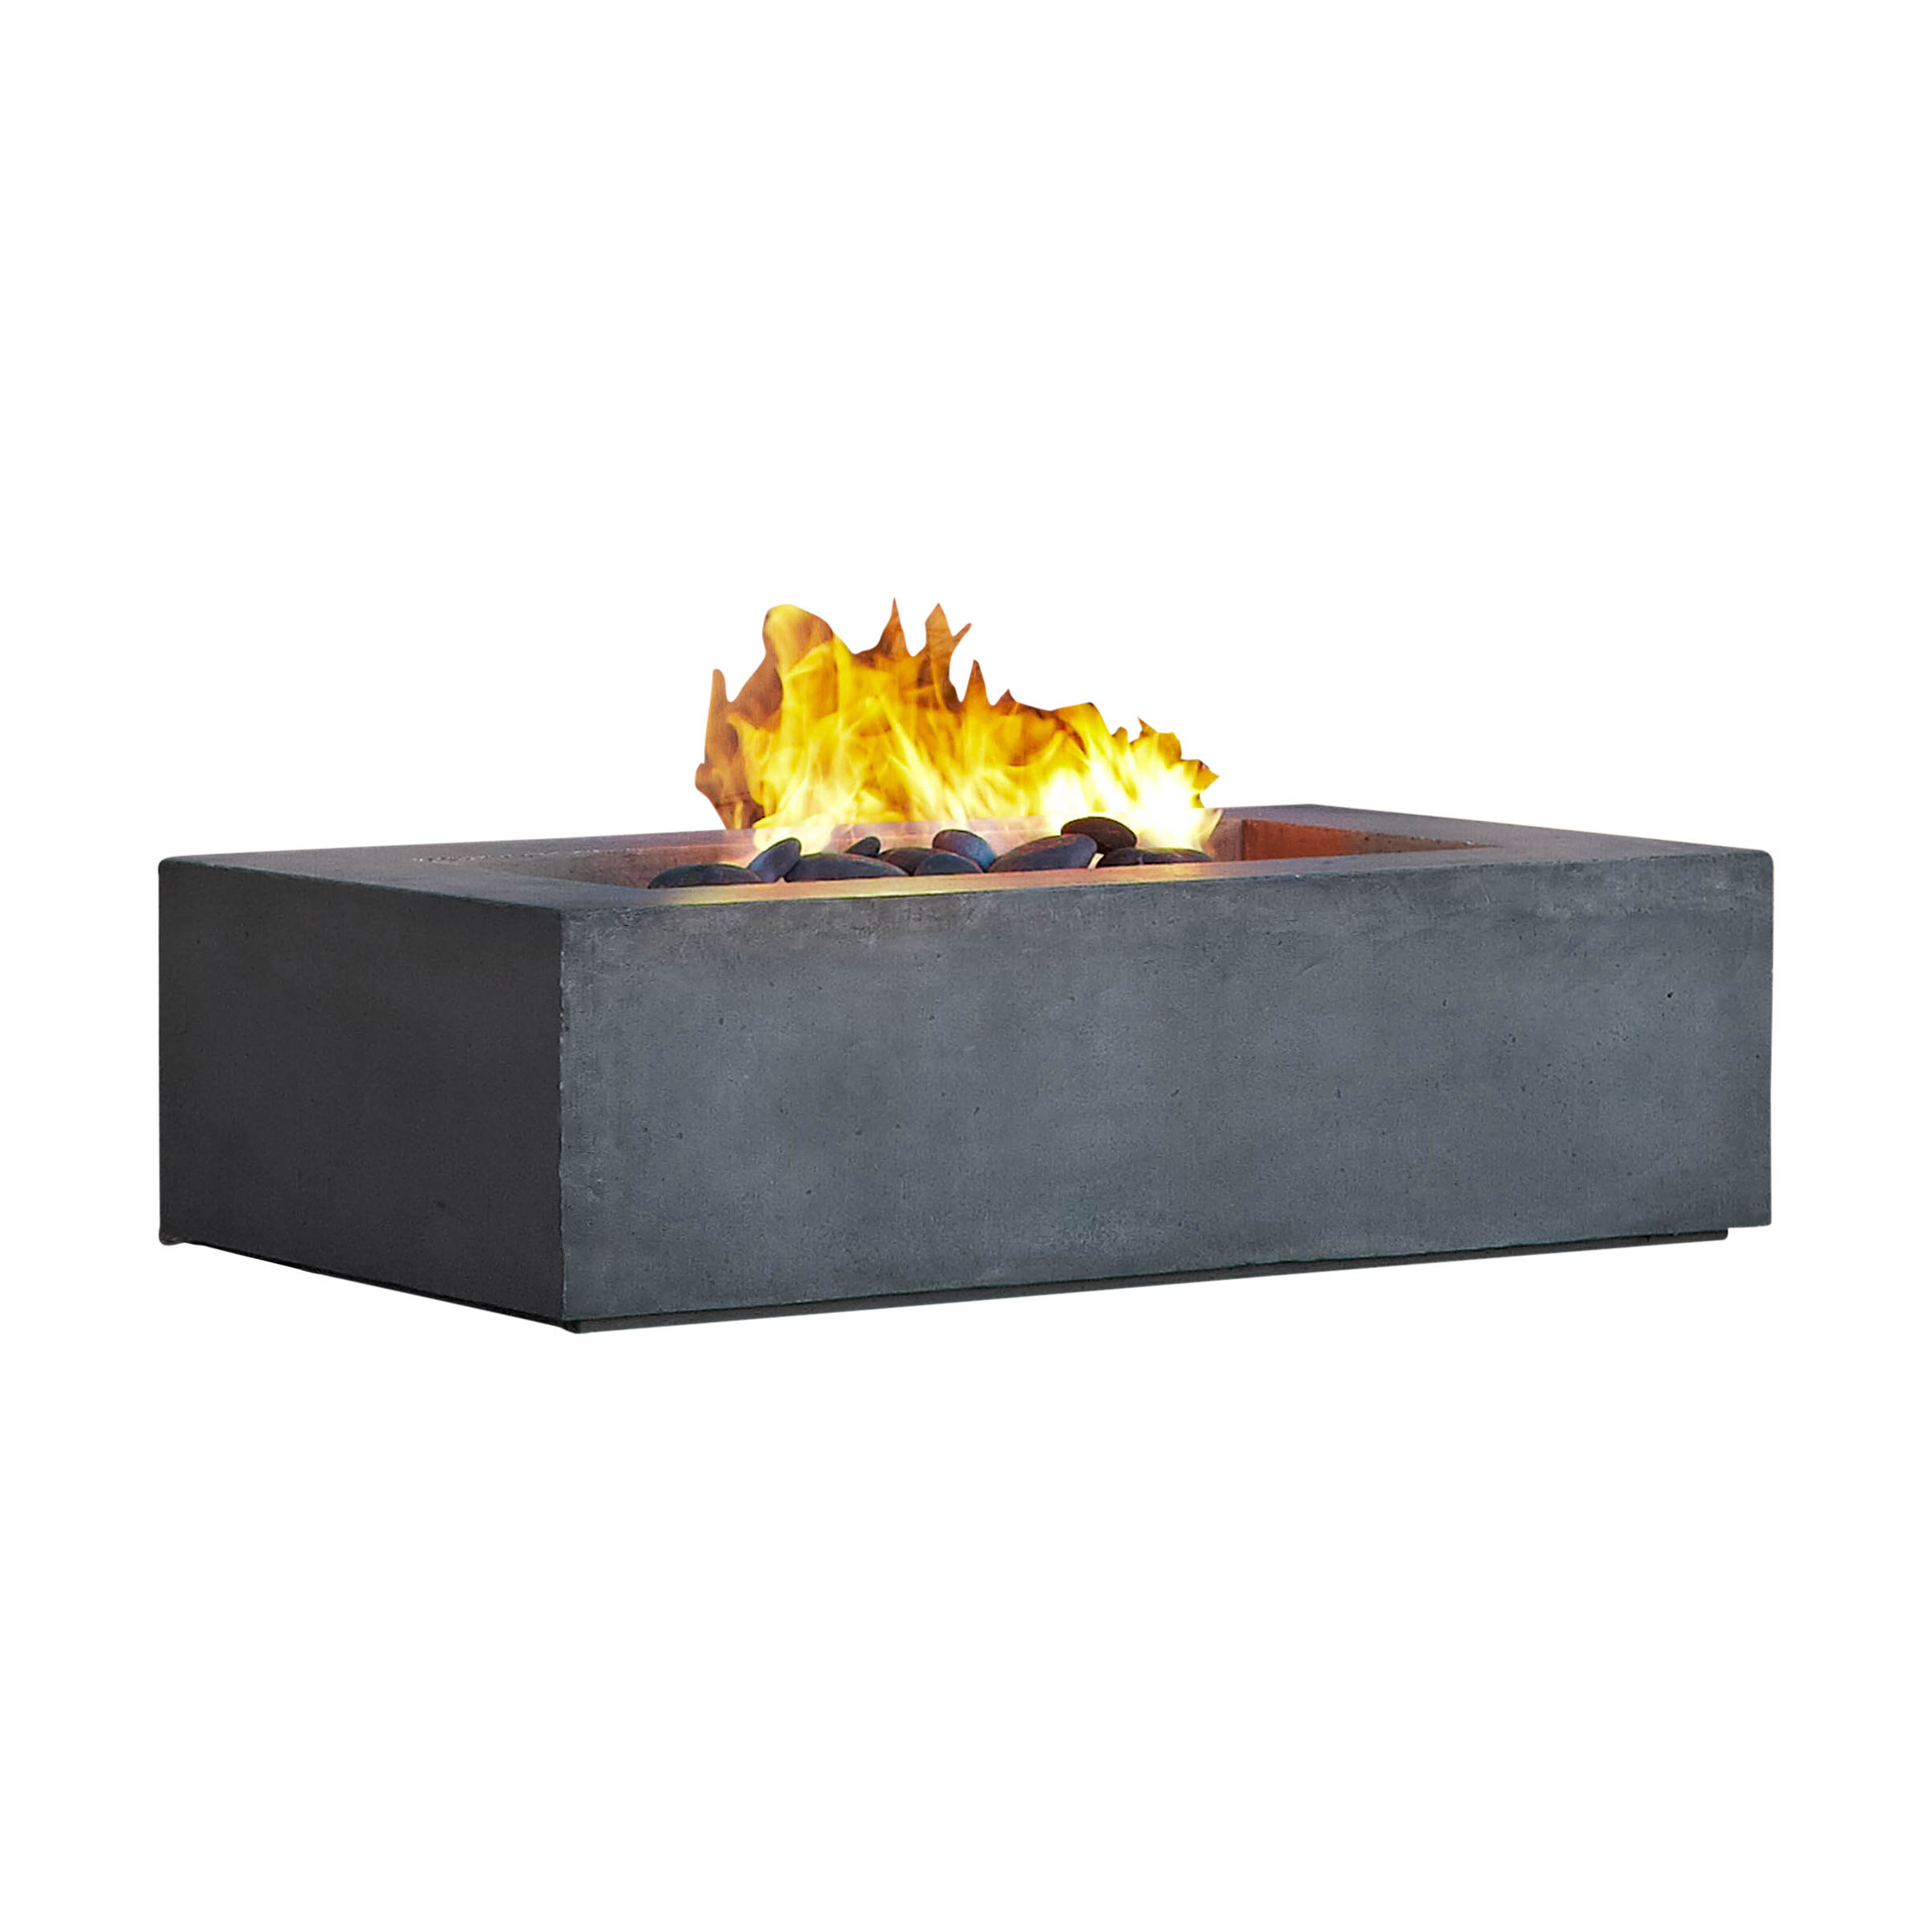 Real flame baltic concrete natural gas fire pit table reviews wayfair